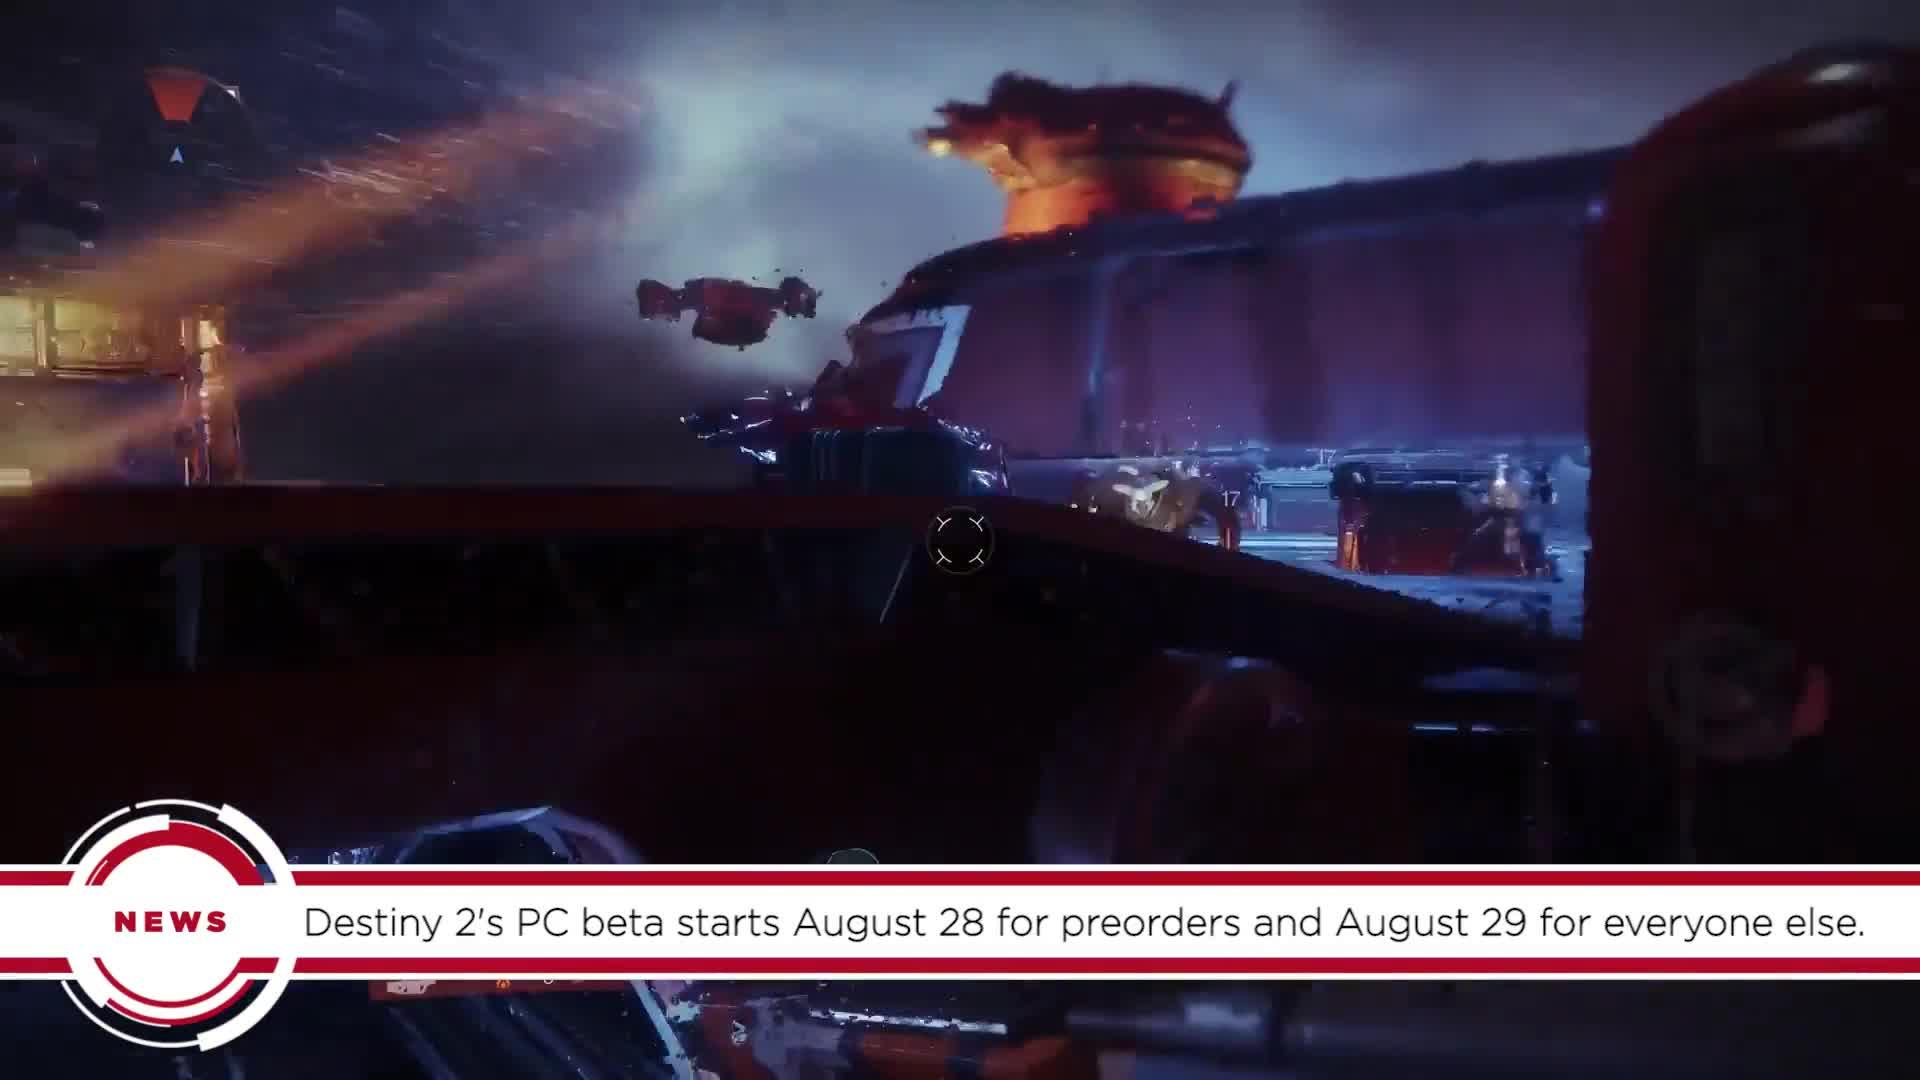 GS News Update: Destiny 2 PC Beta Release Date, System Specs Announced